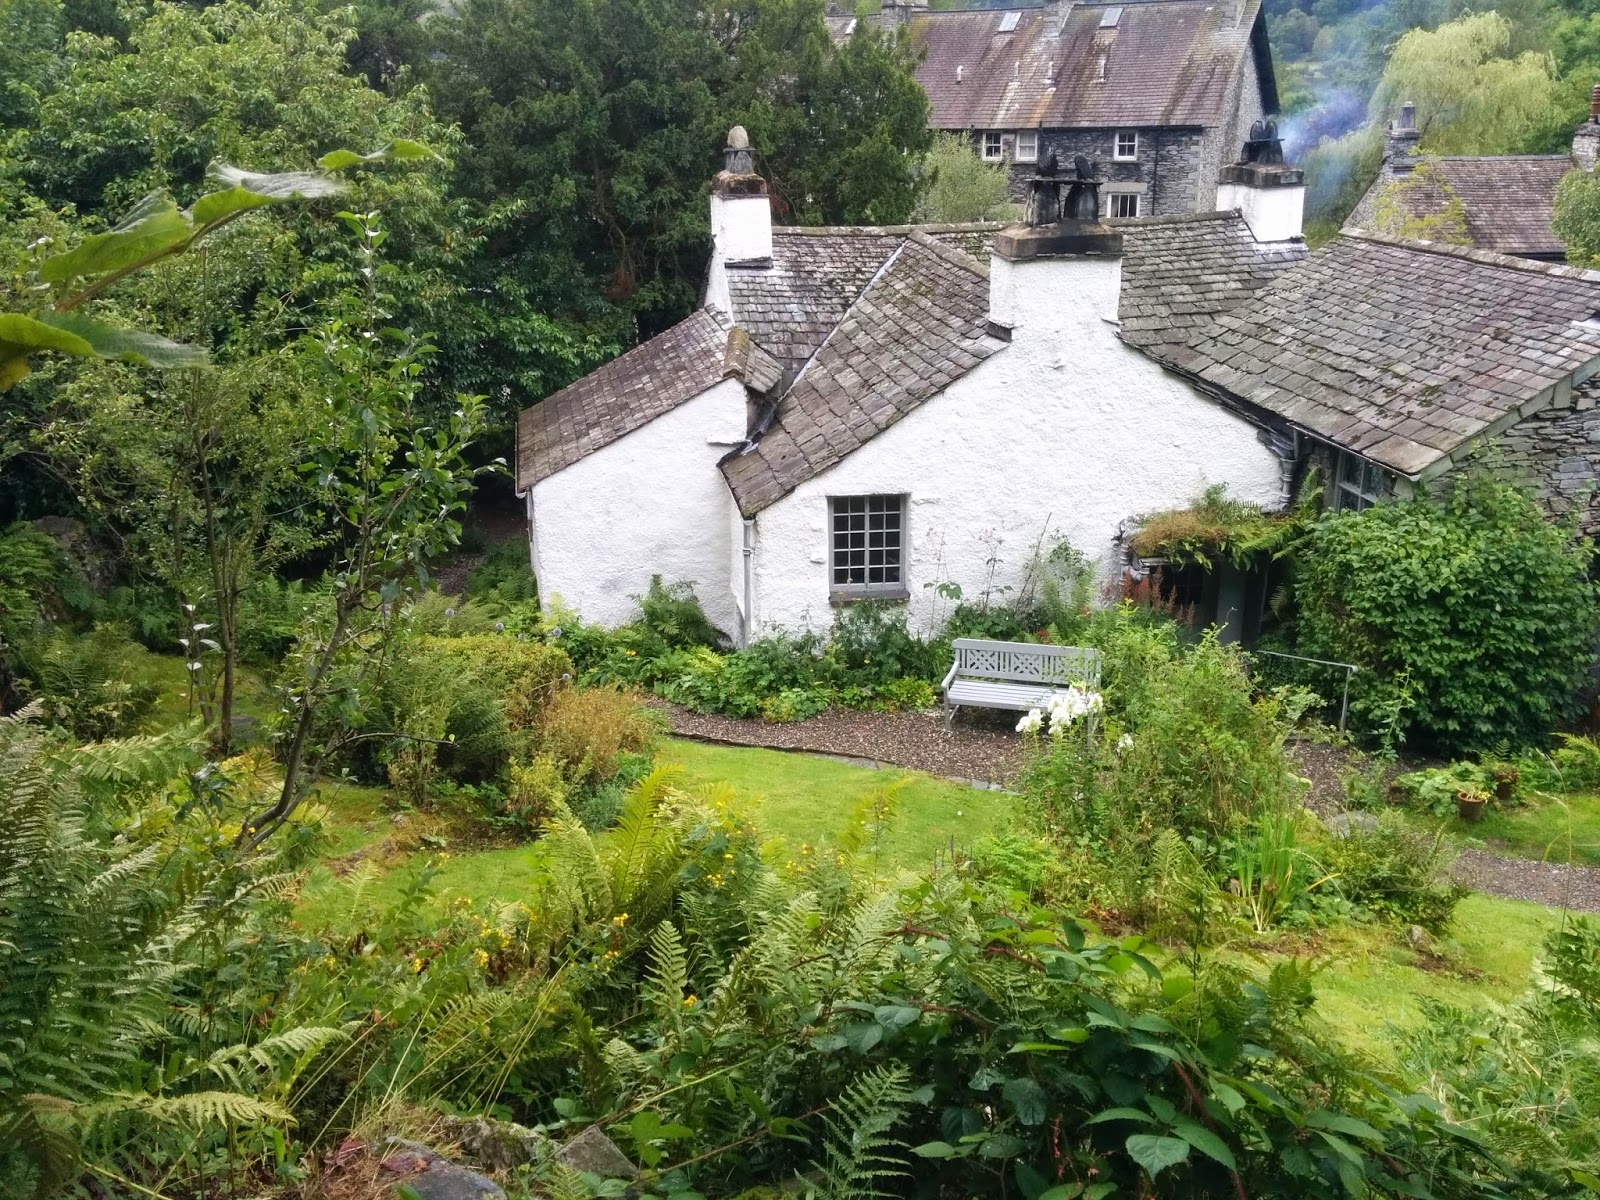 Dove Cottage, Wordsworth's home